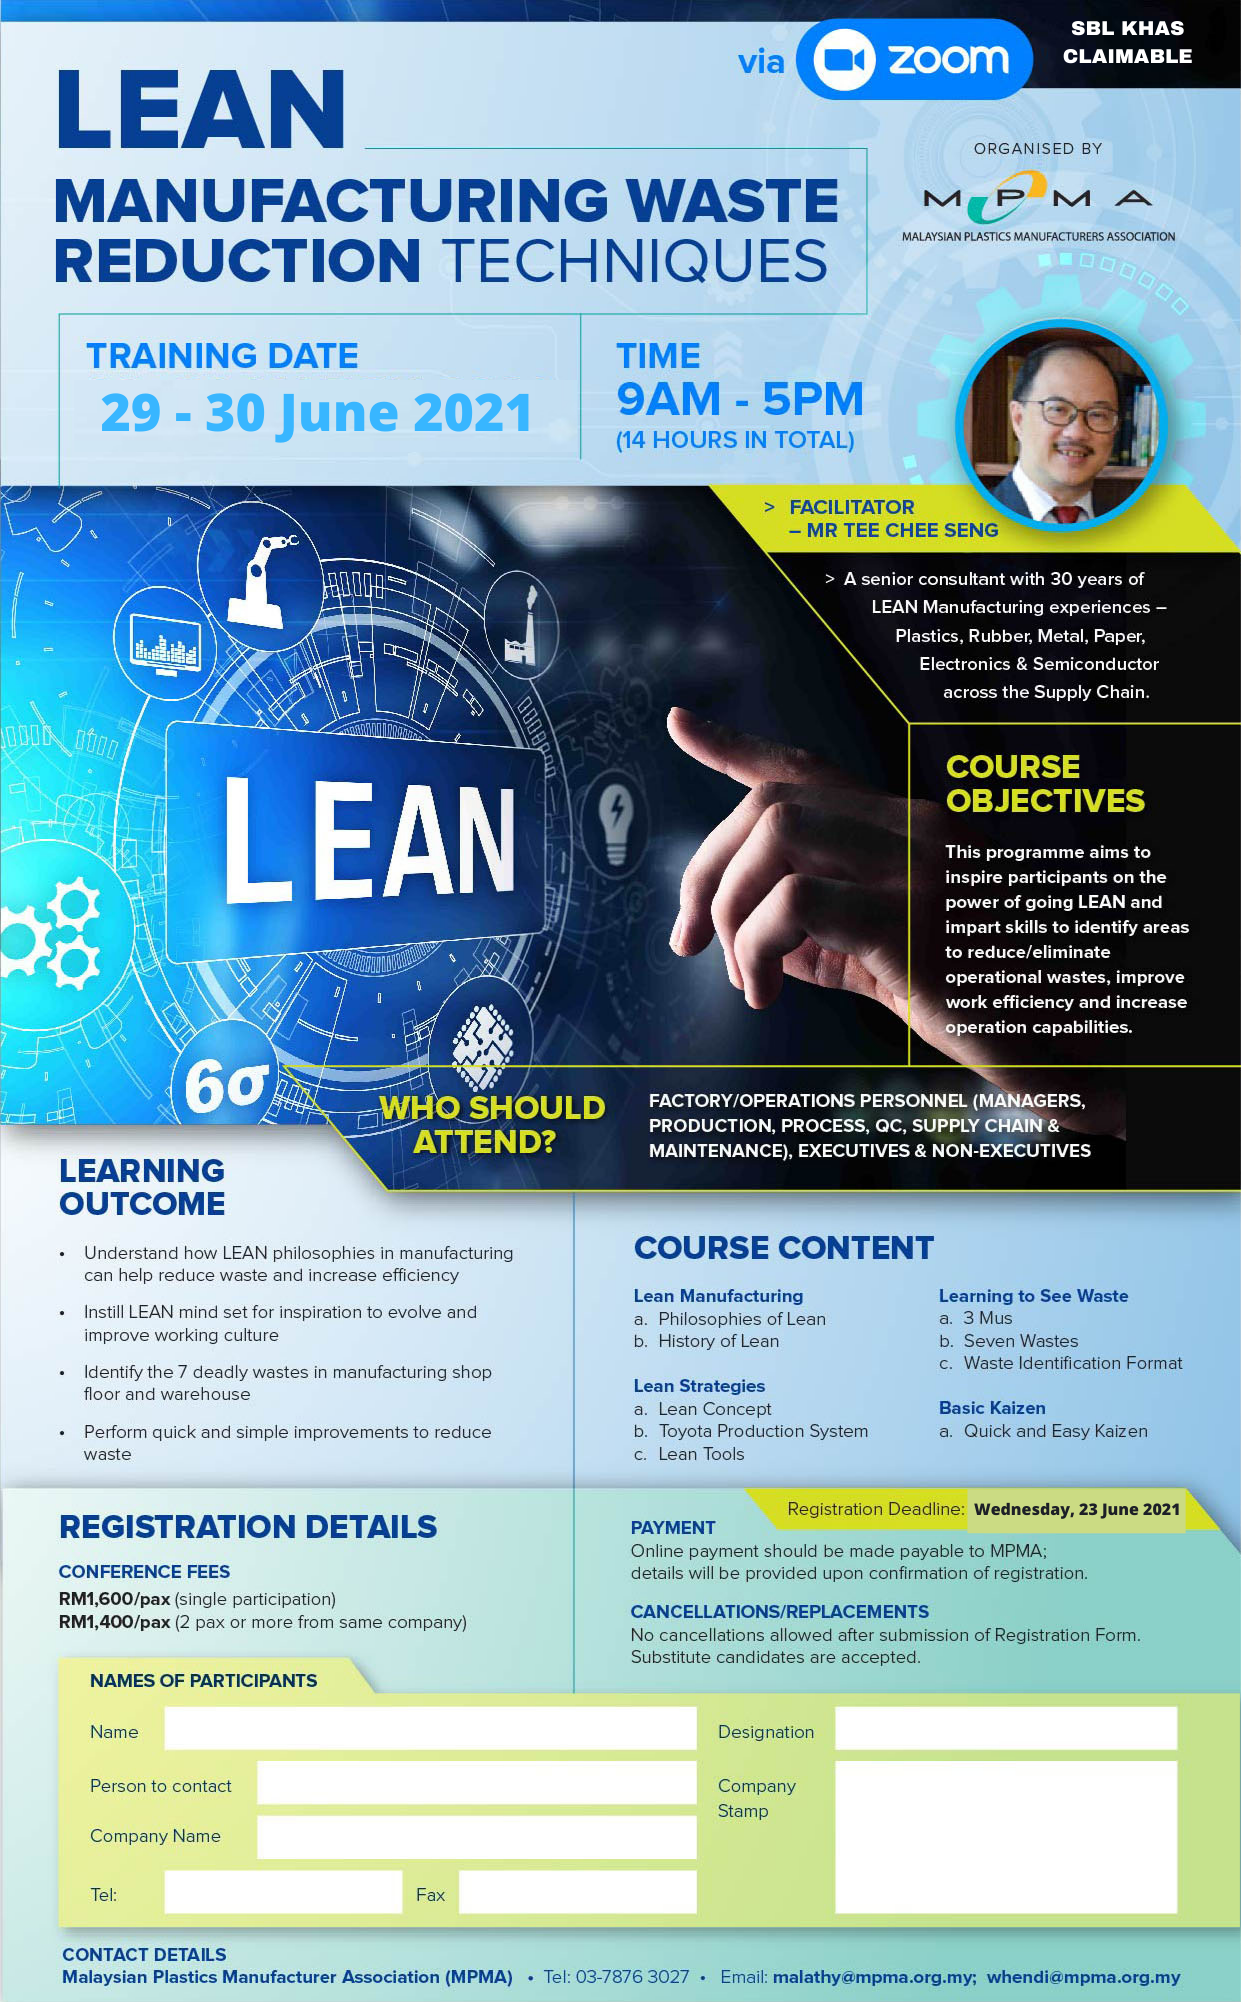 Lean Manufacturing Waste Reduction Techniques via Zoom